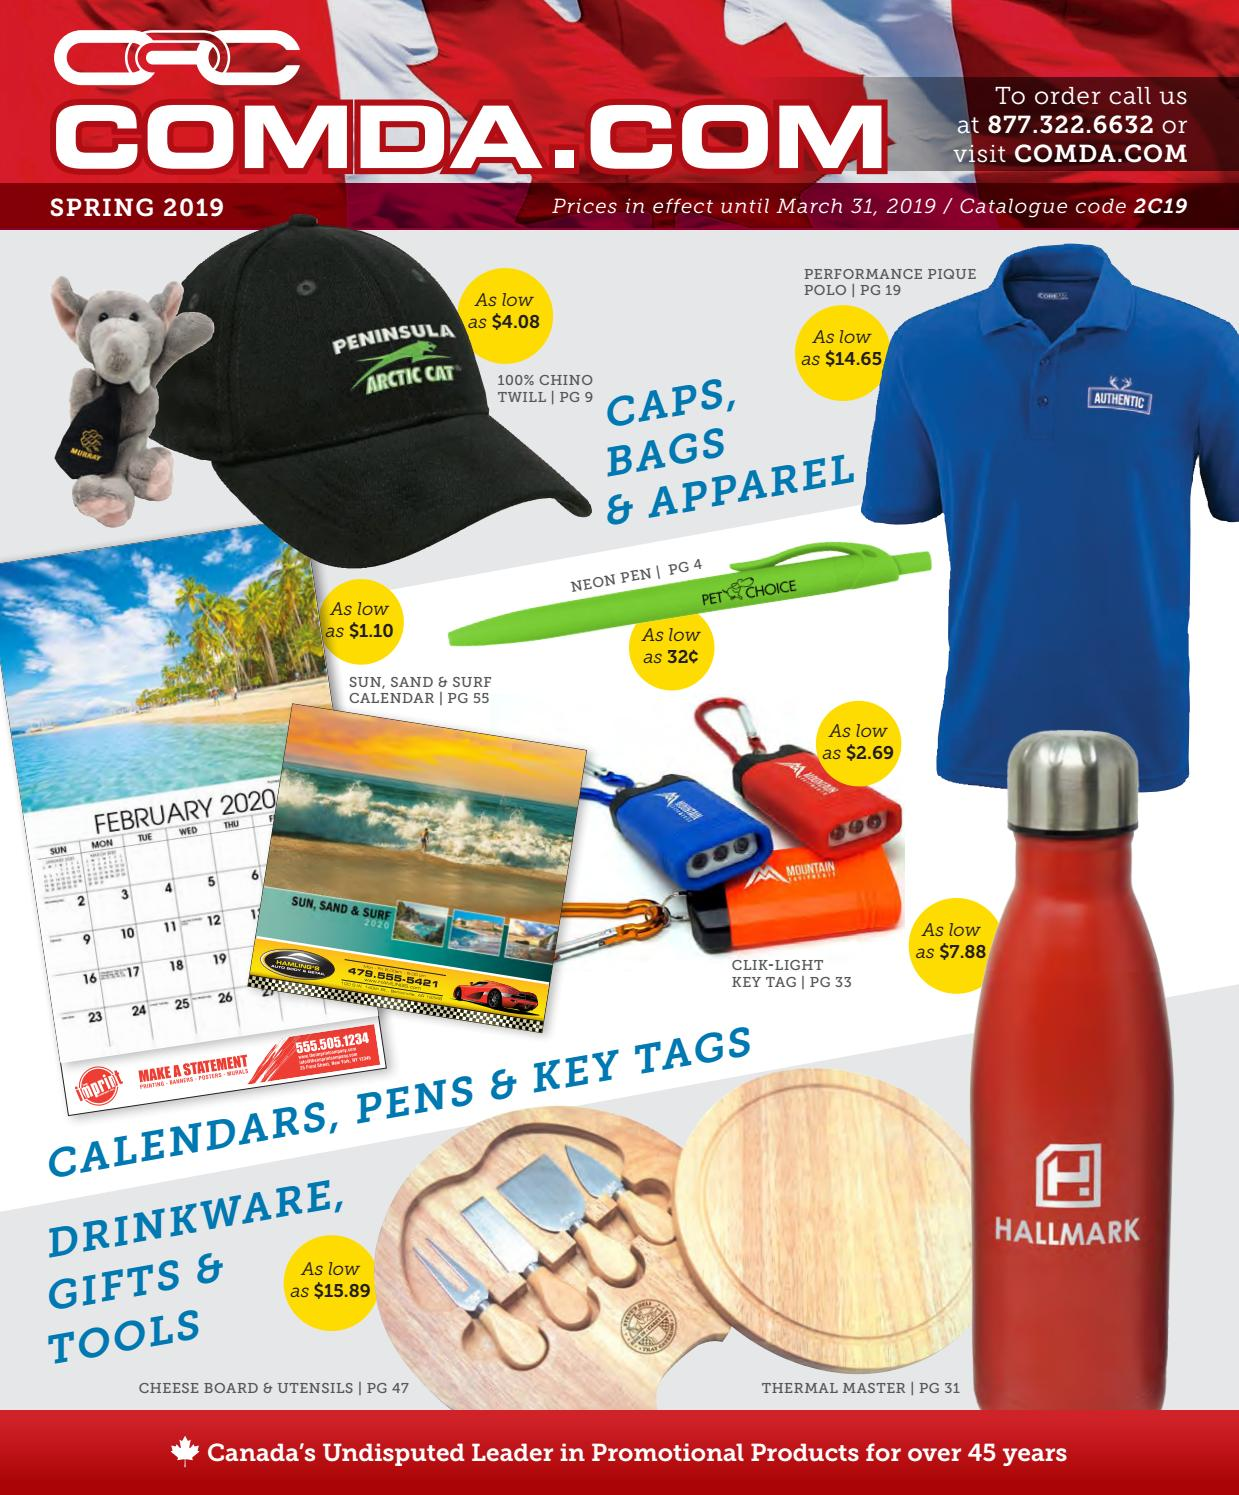 Mar 446 Advertising And Promotions: Promotional Products 2019 (CAN) By